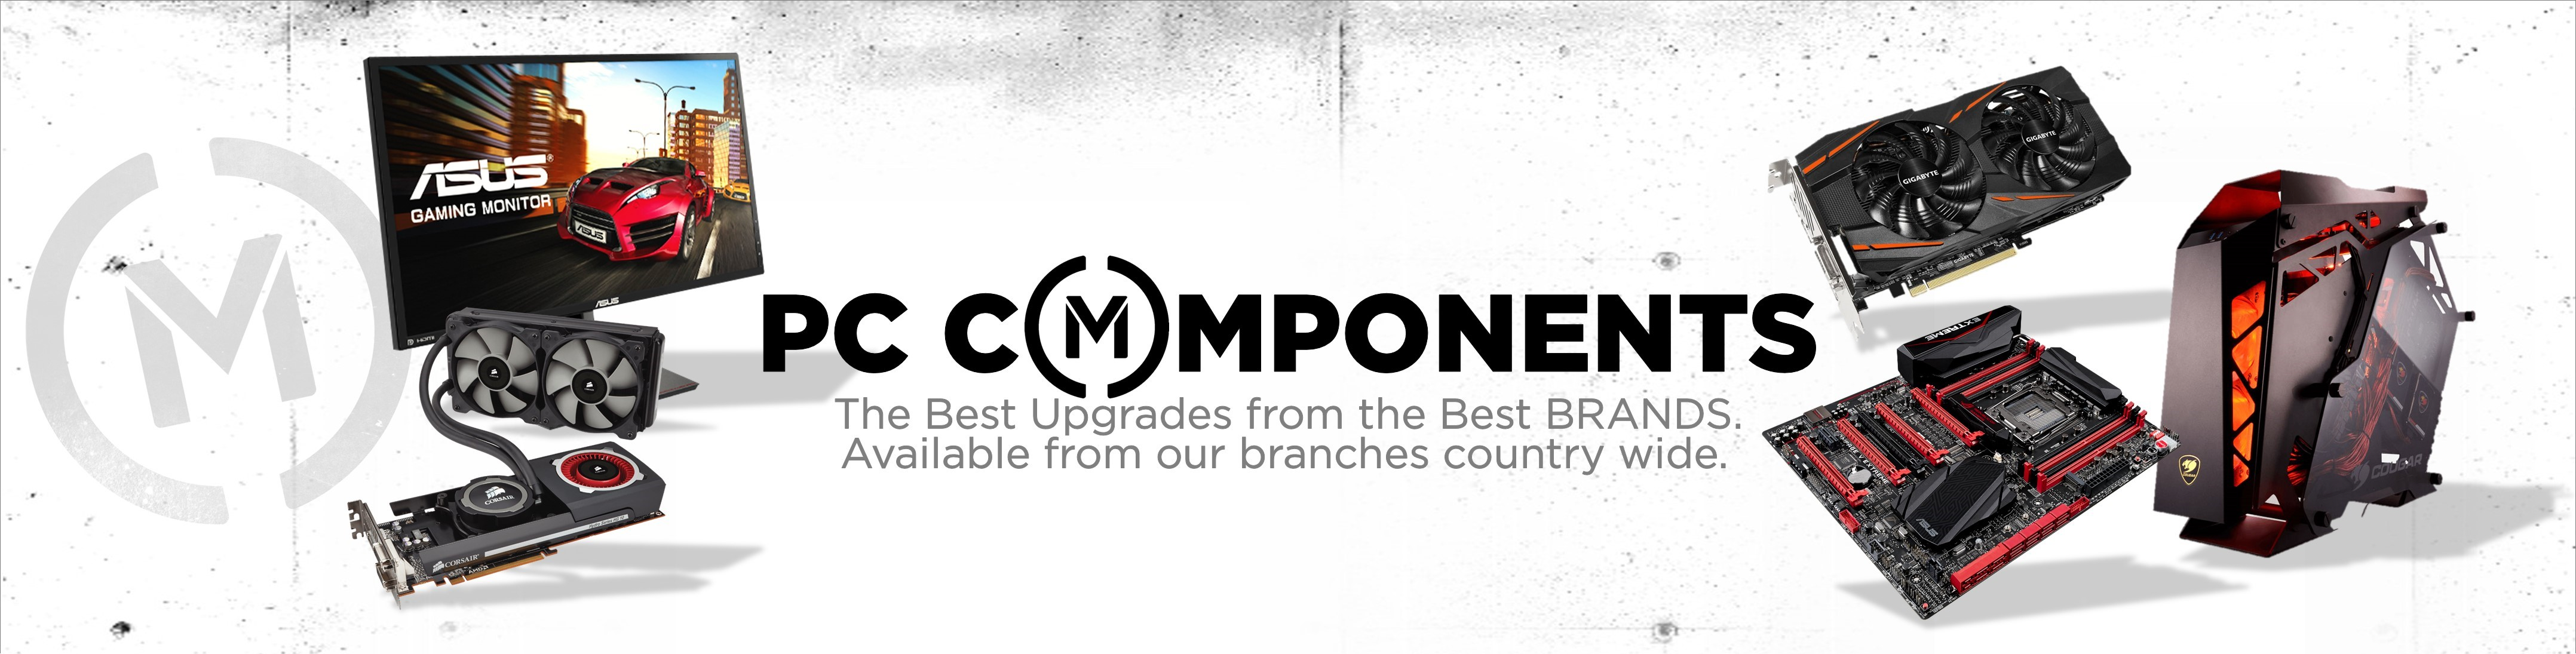 Matrix PC Components Banner